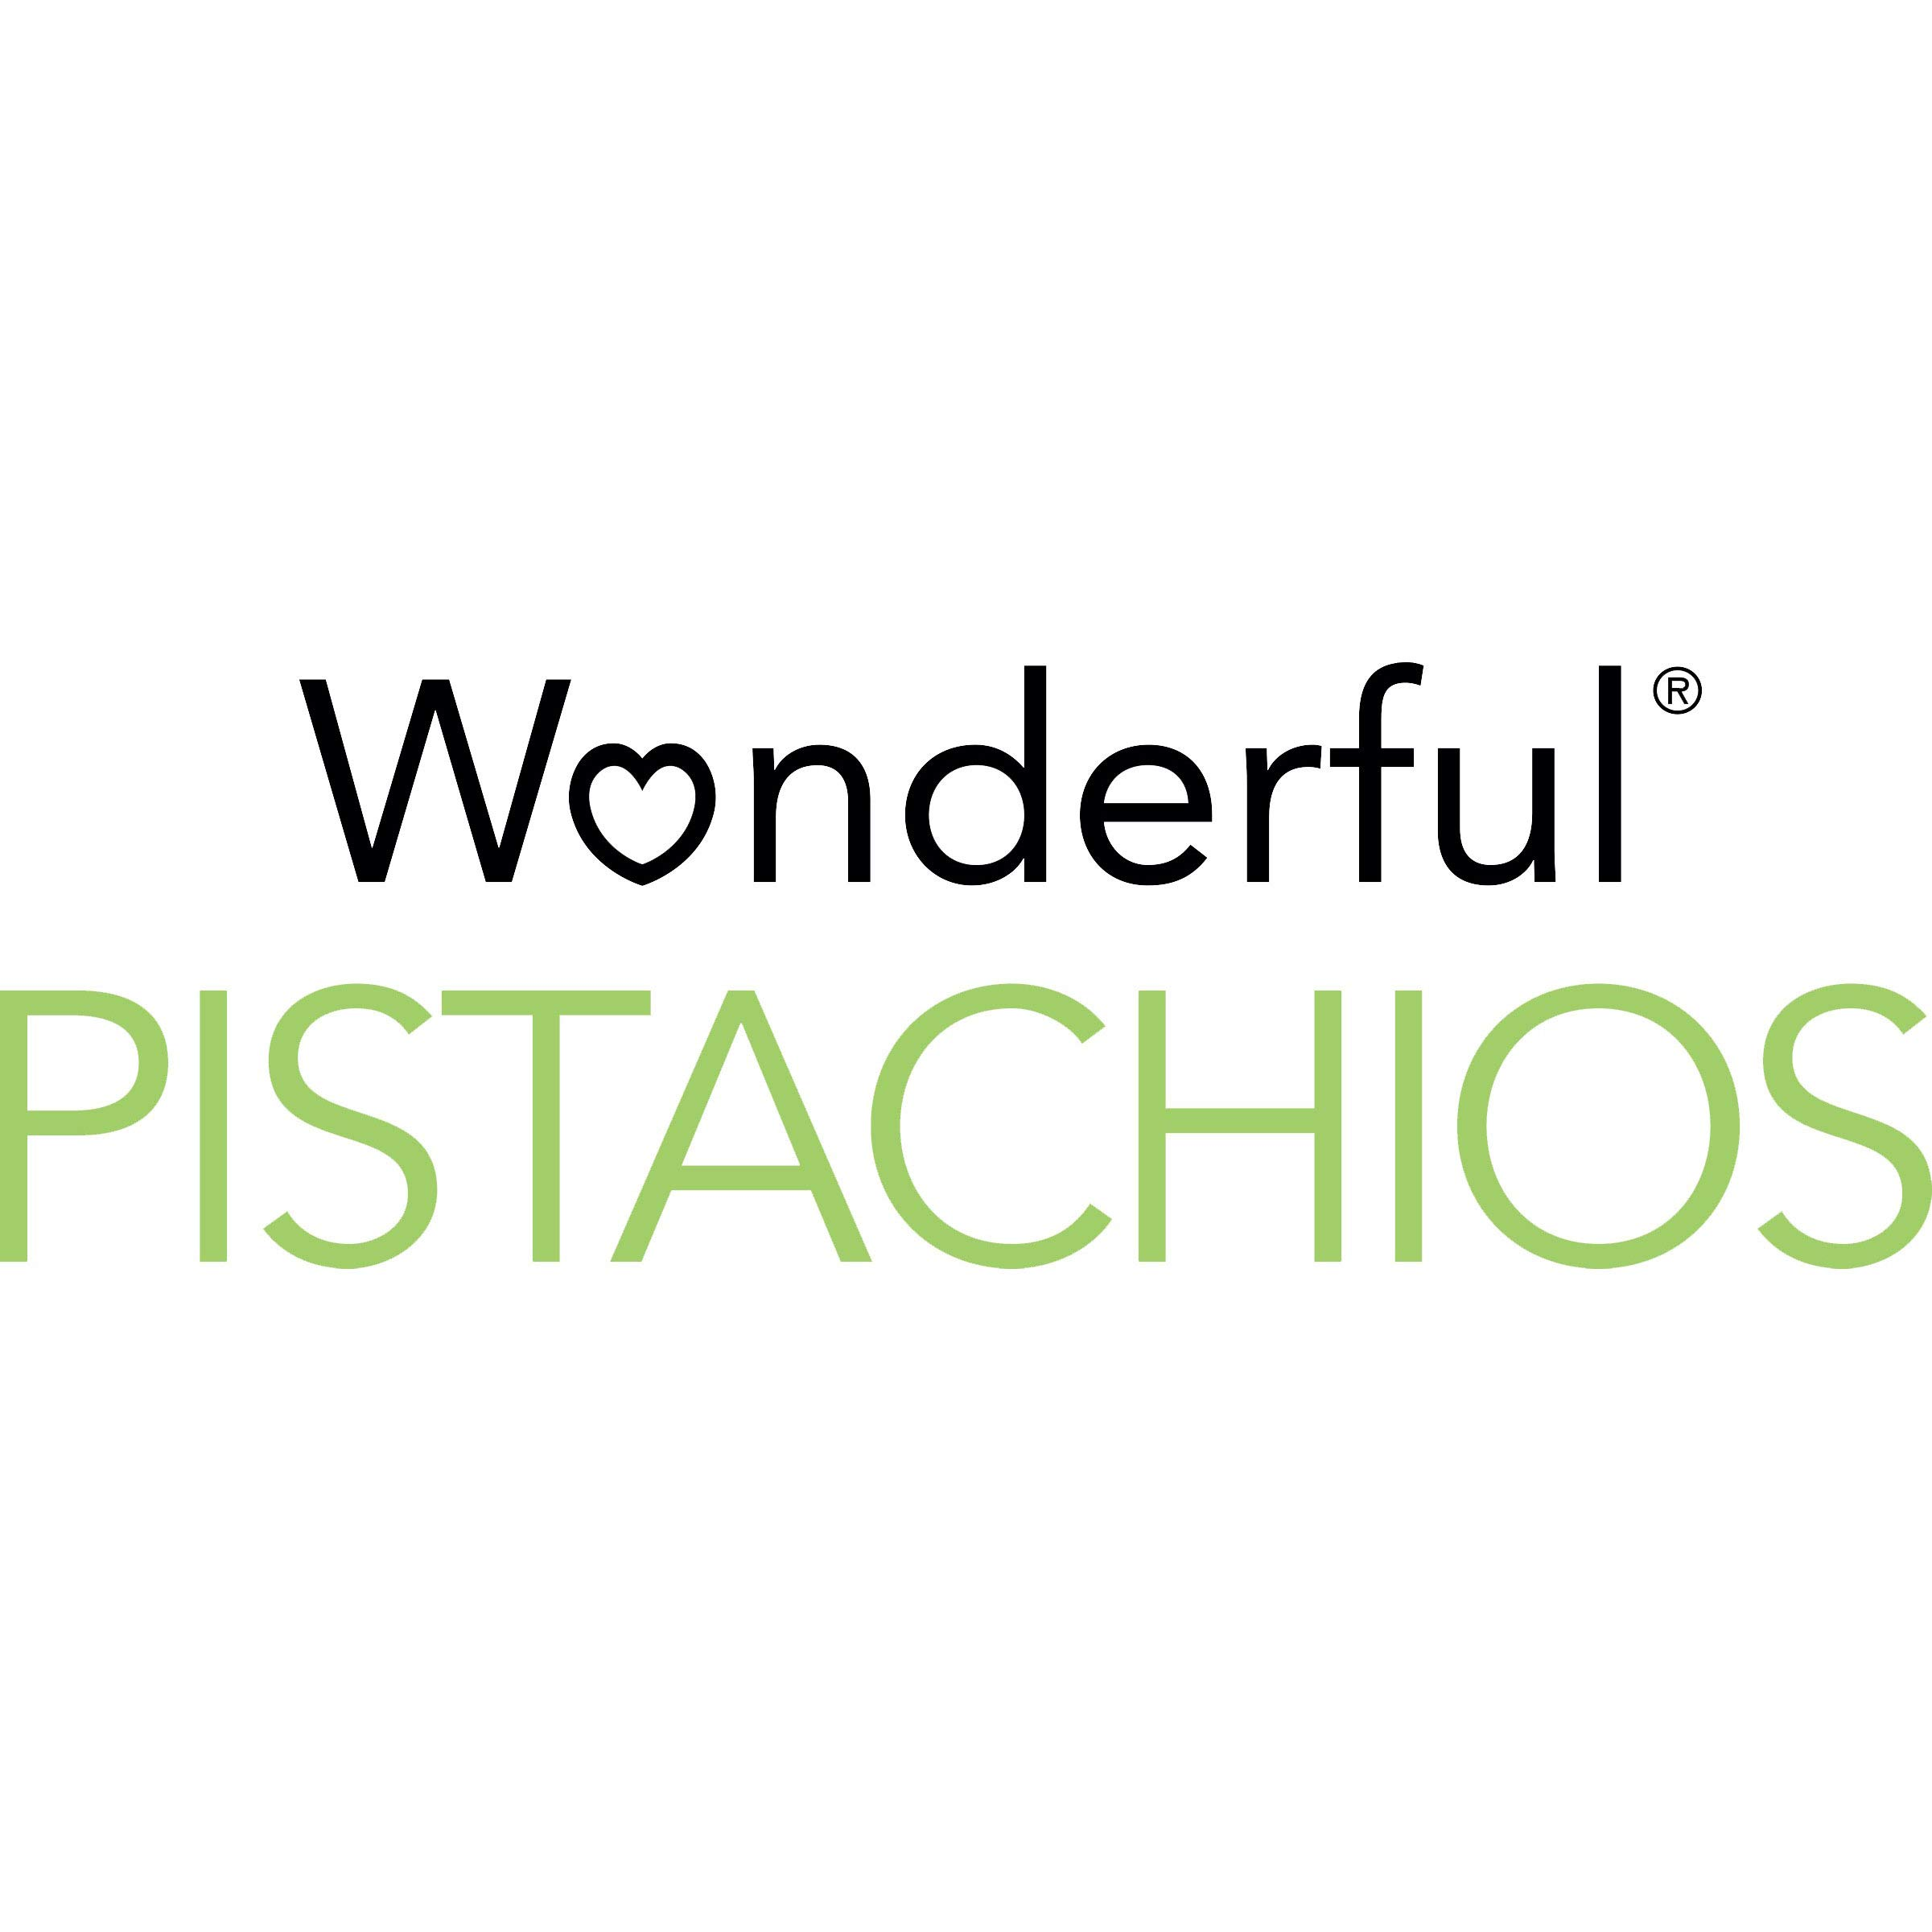 Wonderful Pistachios, No-Shell, Roasted and Salted, 2.5 Ounce Bag (Pack of 8) by Wonderful Pistachios & Almonds (Image #9)